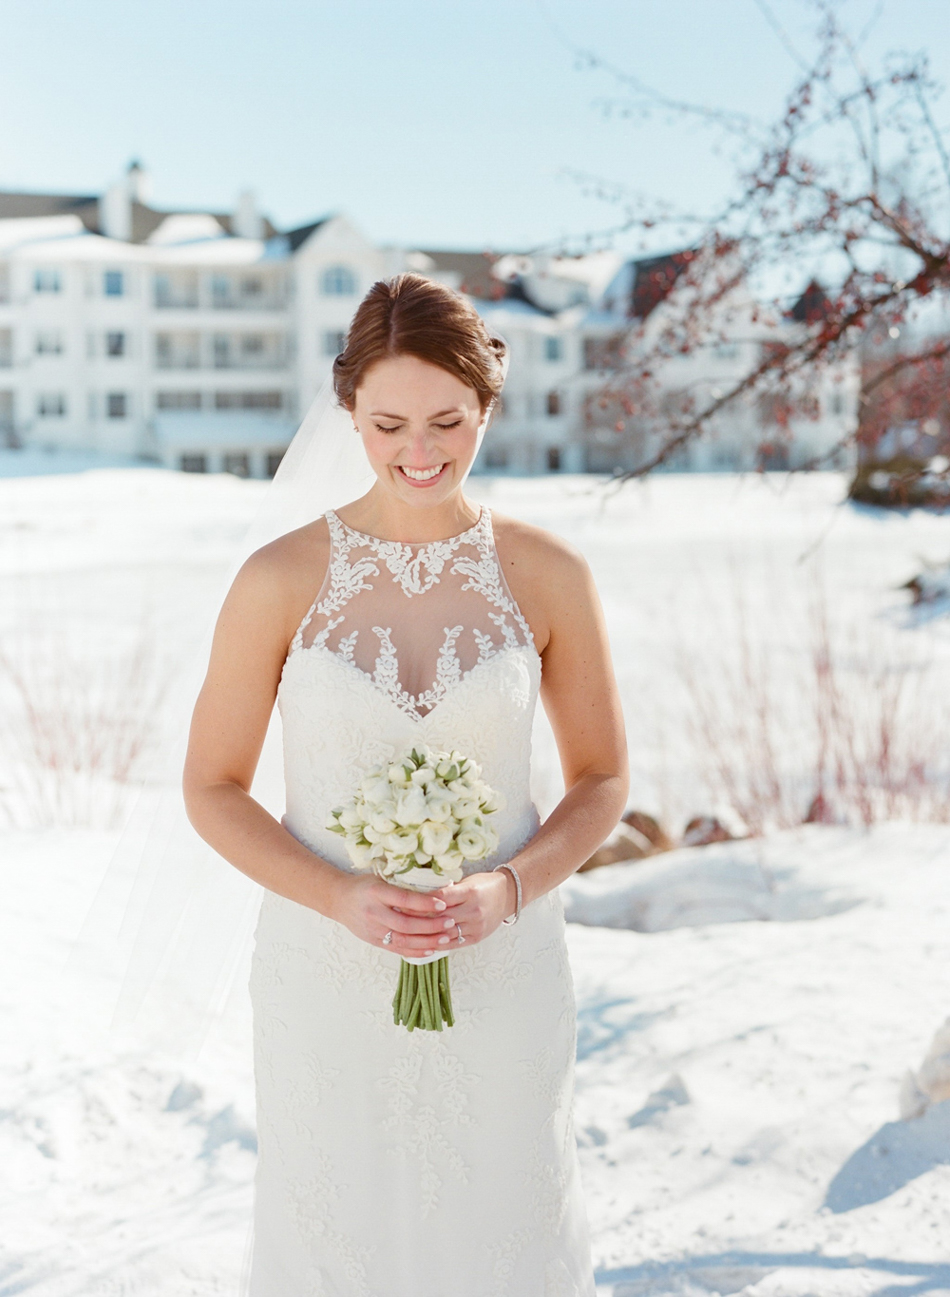 Elkhart_Lake_Wedding_Photographer_025.jpg